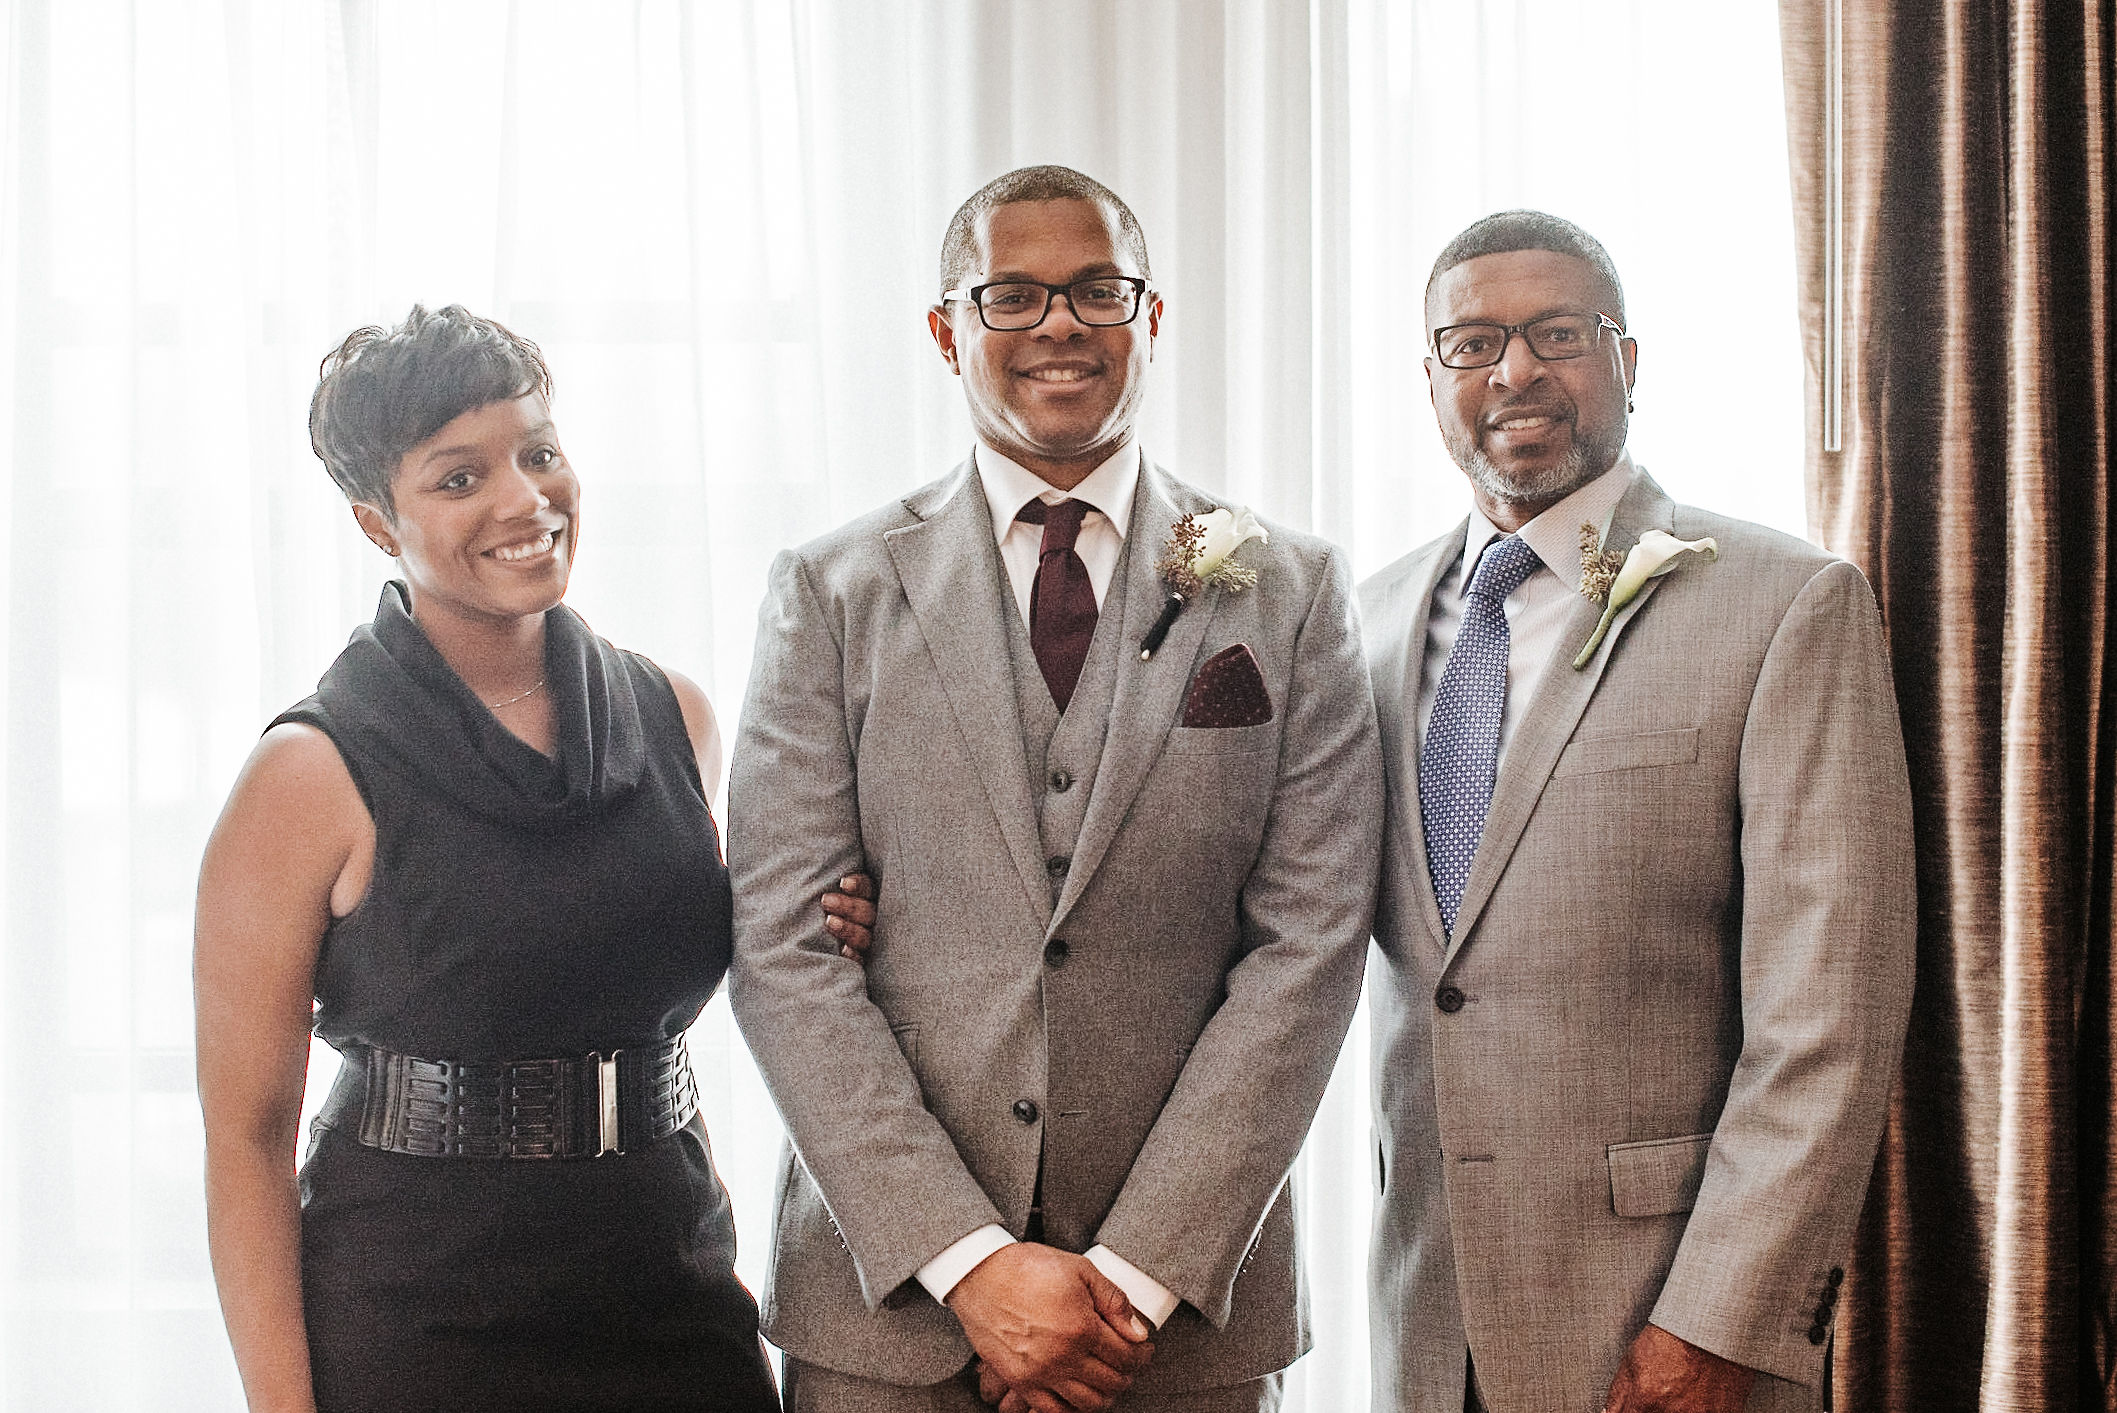 the groom with smiling with his family at the kimpton carlyle hotel